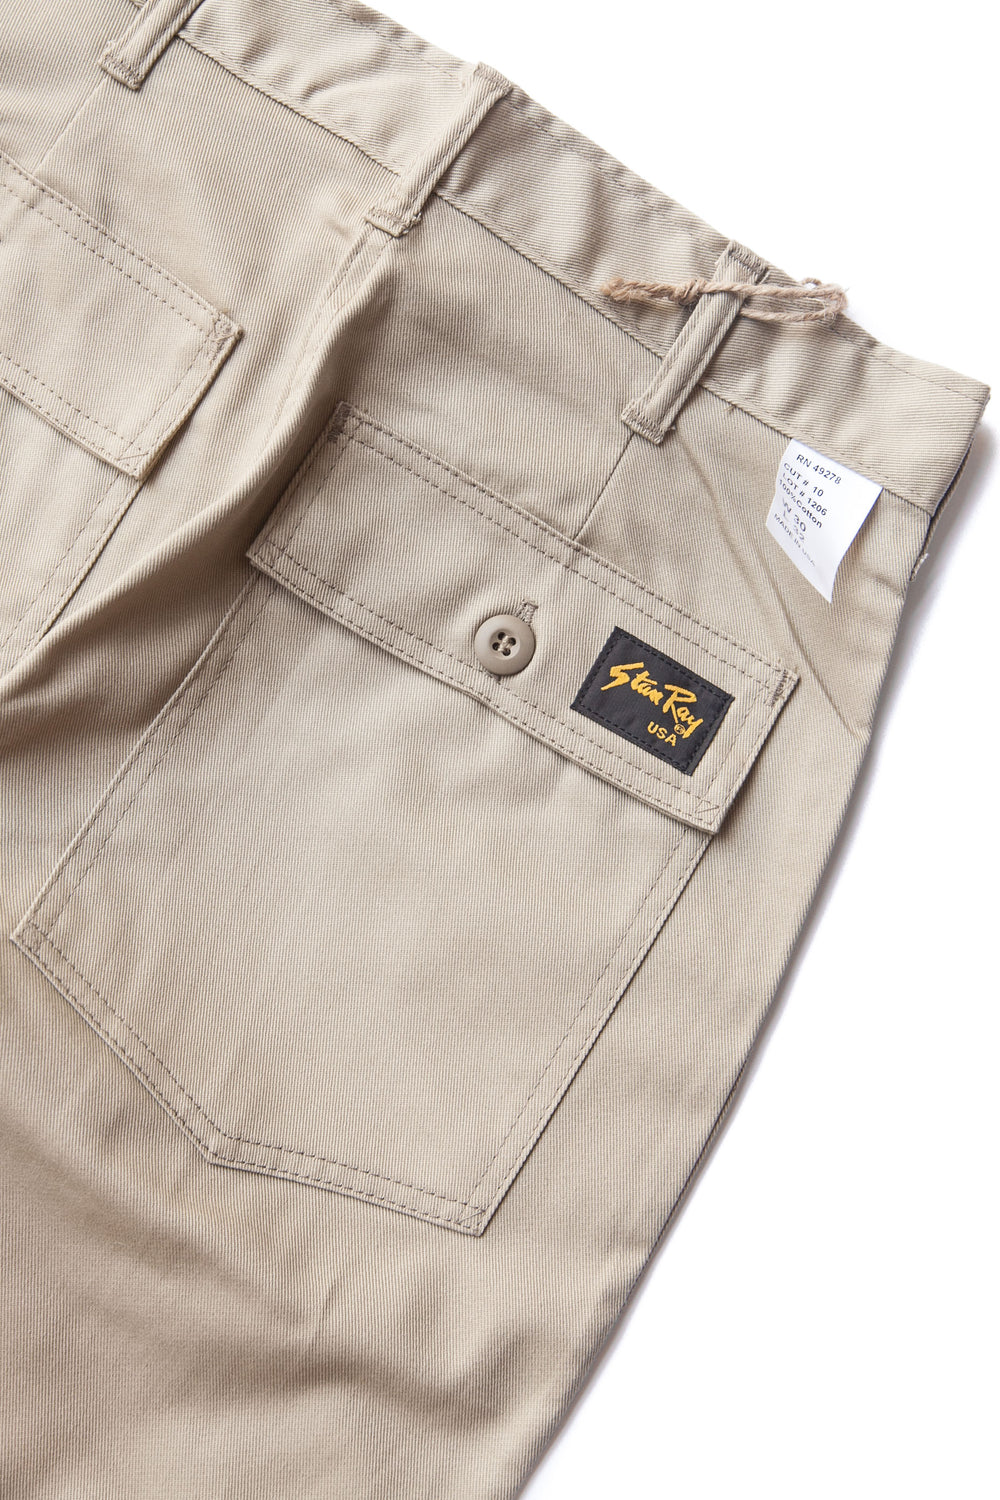 TAPER FATIGUE KHAKI TWILL